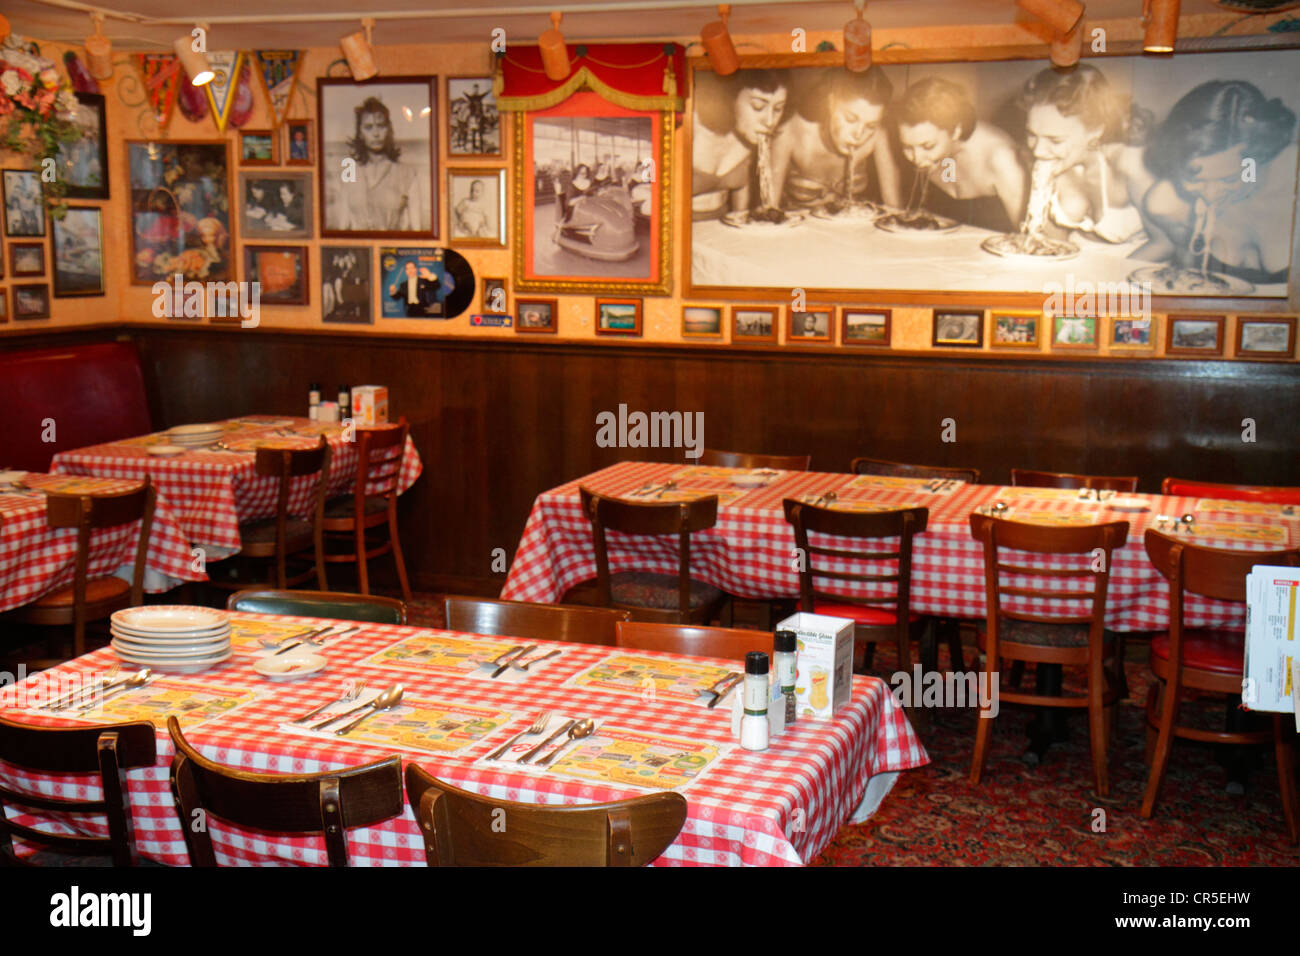 Fort lauderdale ft florida plantation buca di beppo for Italian cafe interior design ideas